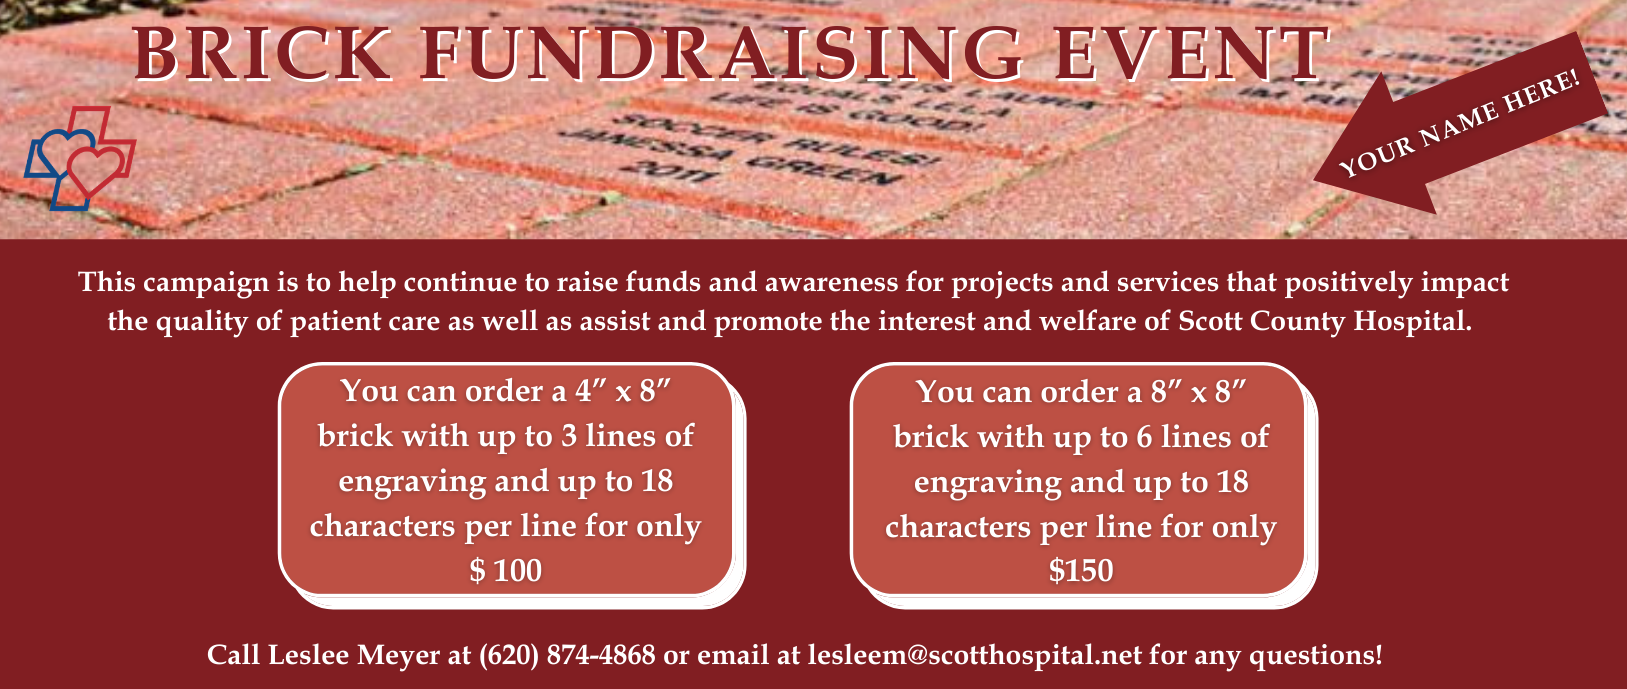 Brick Fundrasing event.  This campaign is to help continue to raise funds and awareness for projects and services that positively impact the quality of patient care as well as assist and promote the interest and welfare of scott county hospital. Call Leslee Meyer at 620-874-4868 or email at lesleem@scotthospital.net for any questions.